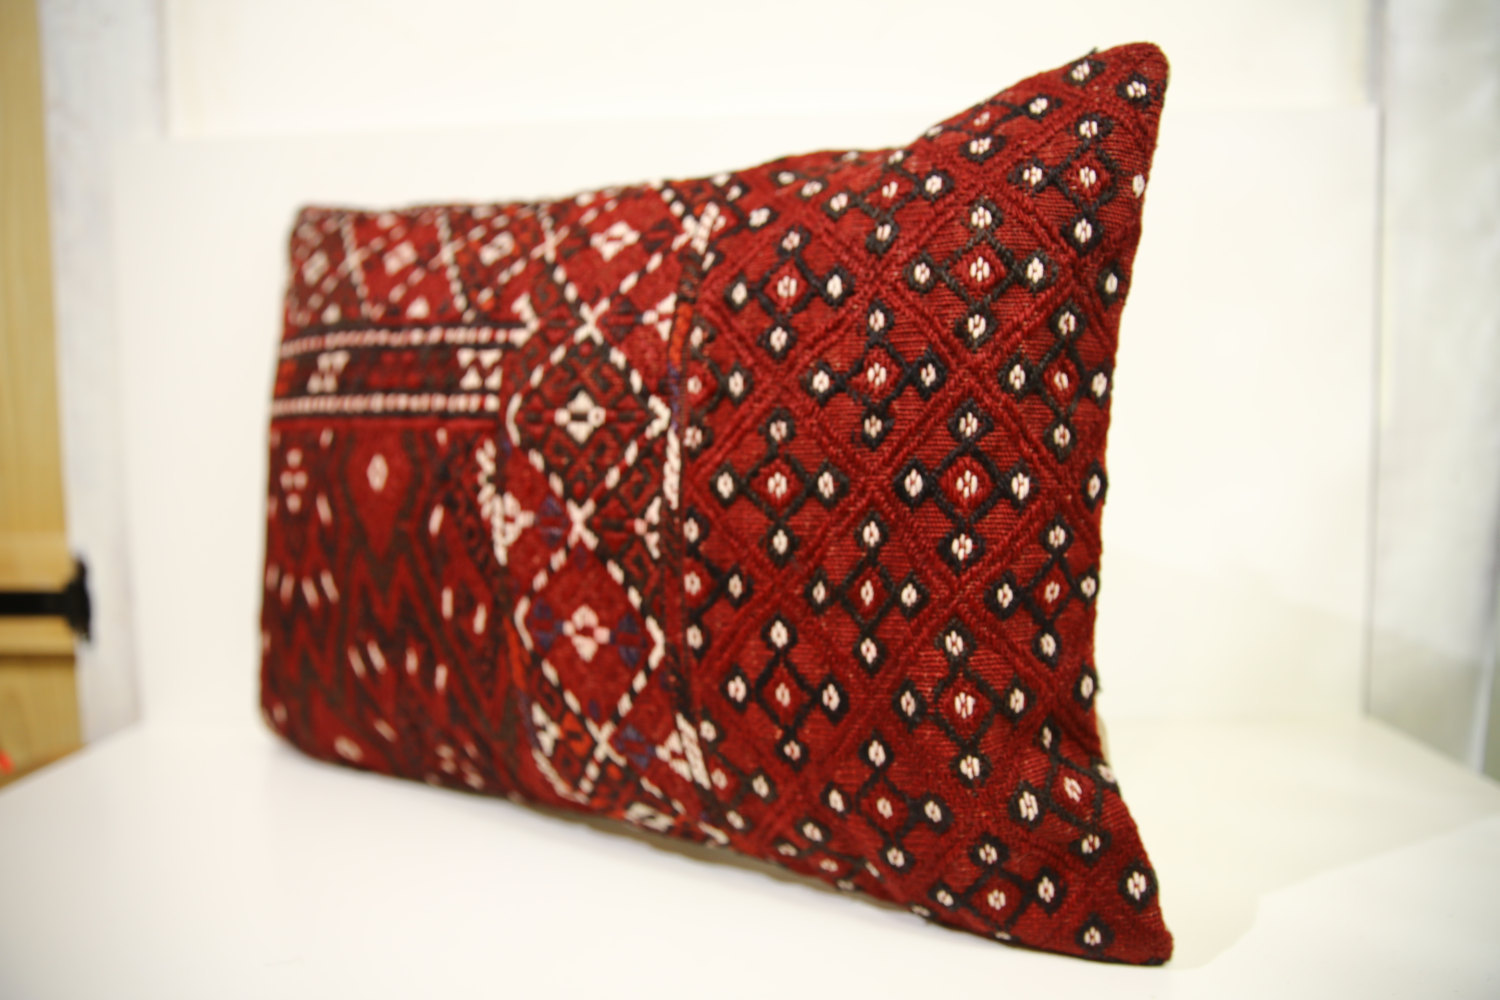 Turkish Kilim Throw Pillows : Kilim Pillows 24x16 Lumbar pillows 1467 Turkish pillows , throw pillows - Pillows